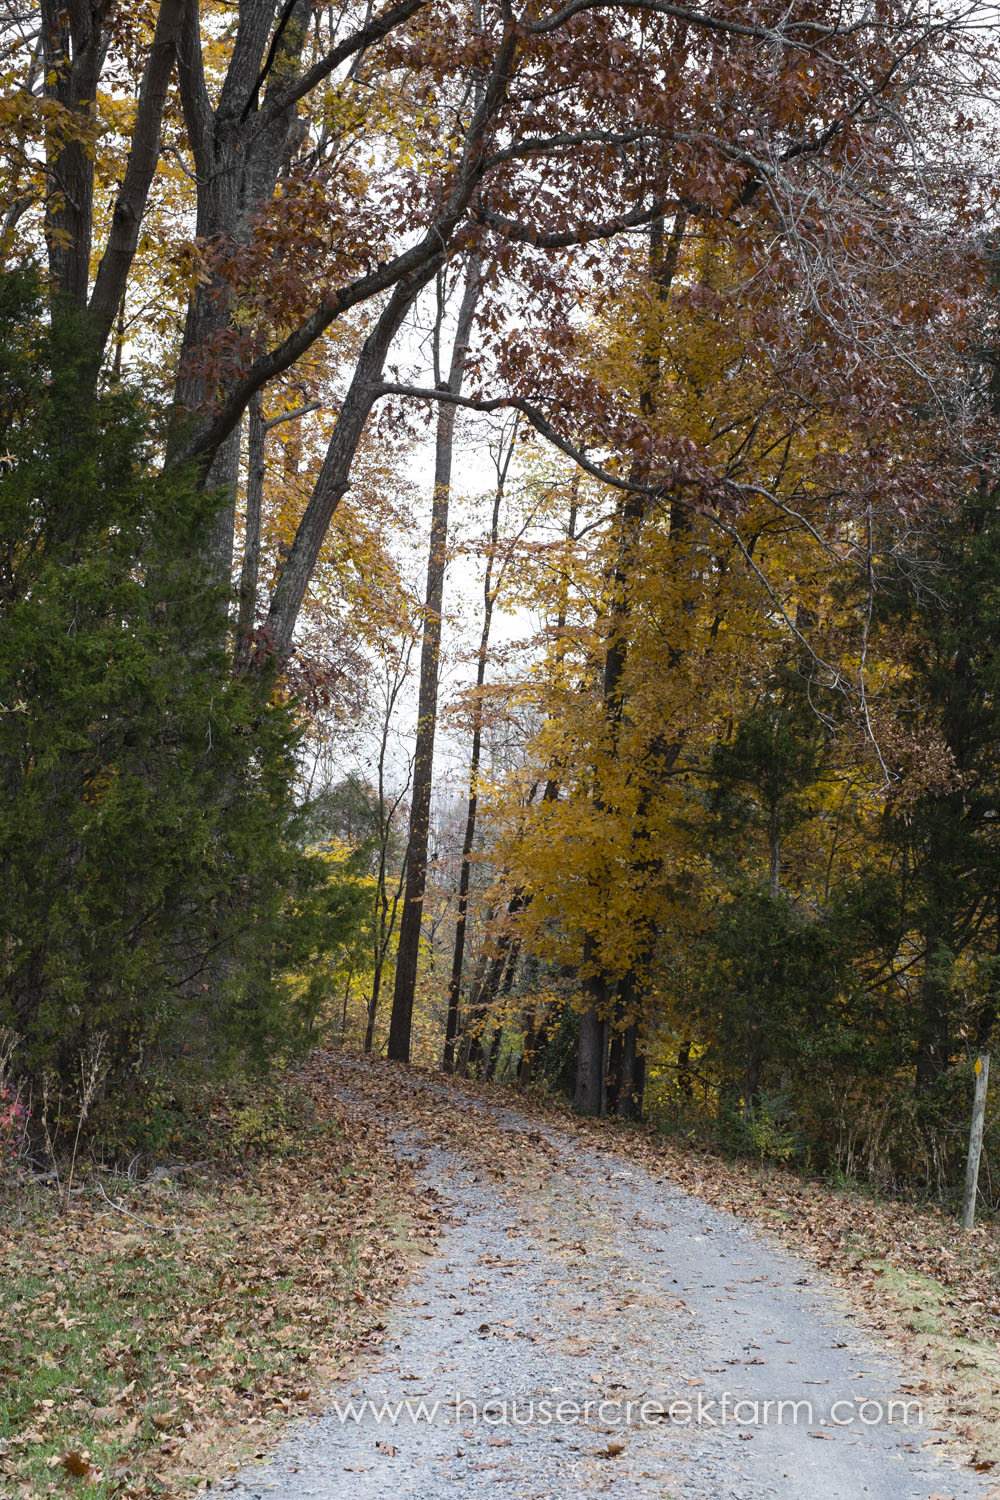 road-with-yellow-fall-leaves-photo-by-chris-fowler-1170color.jpg